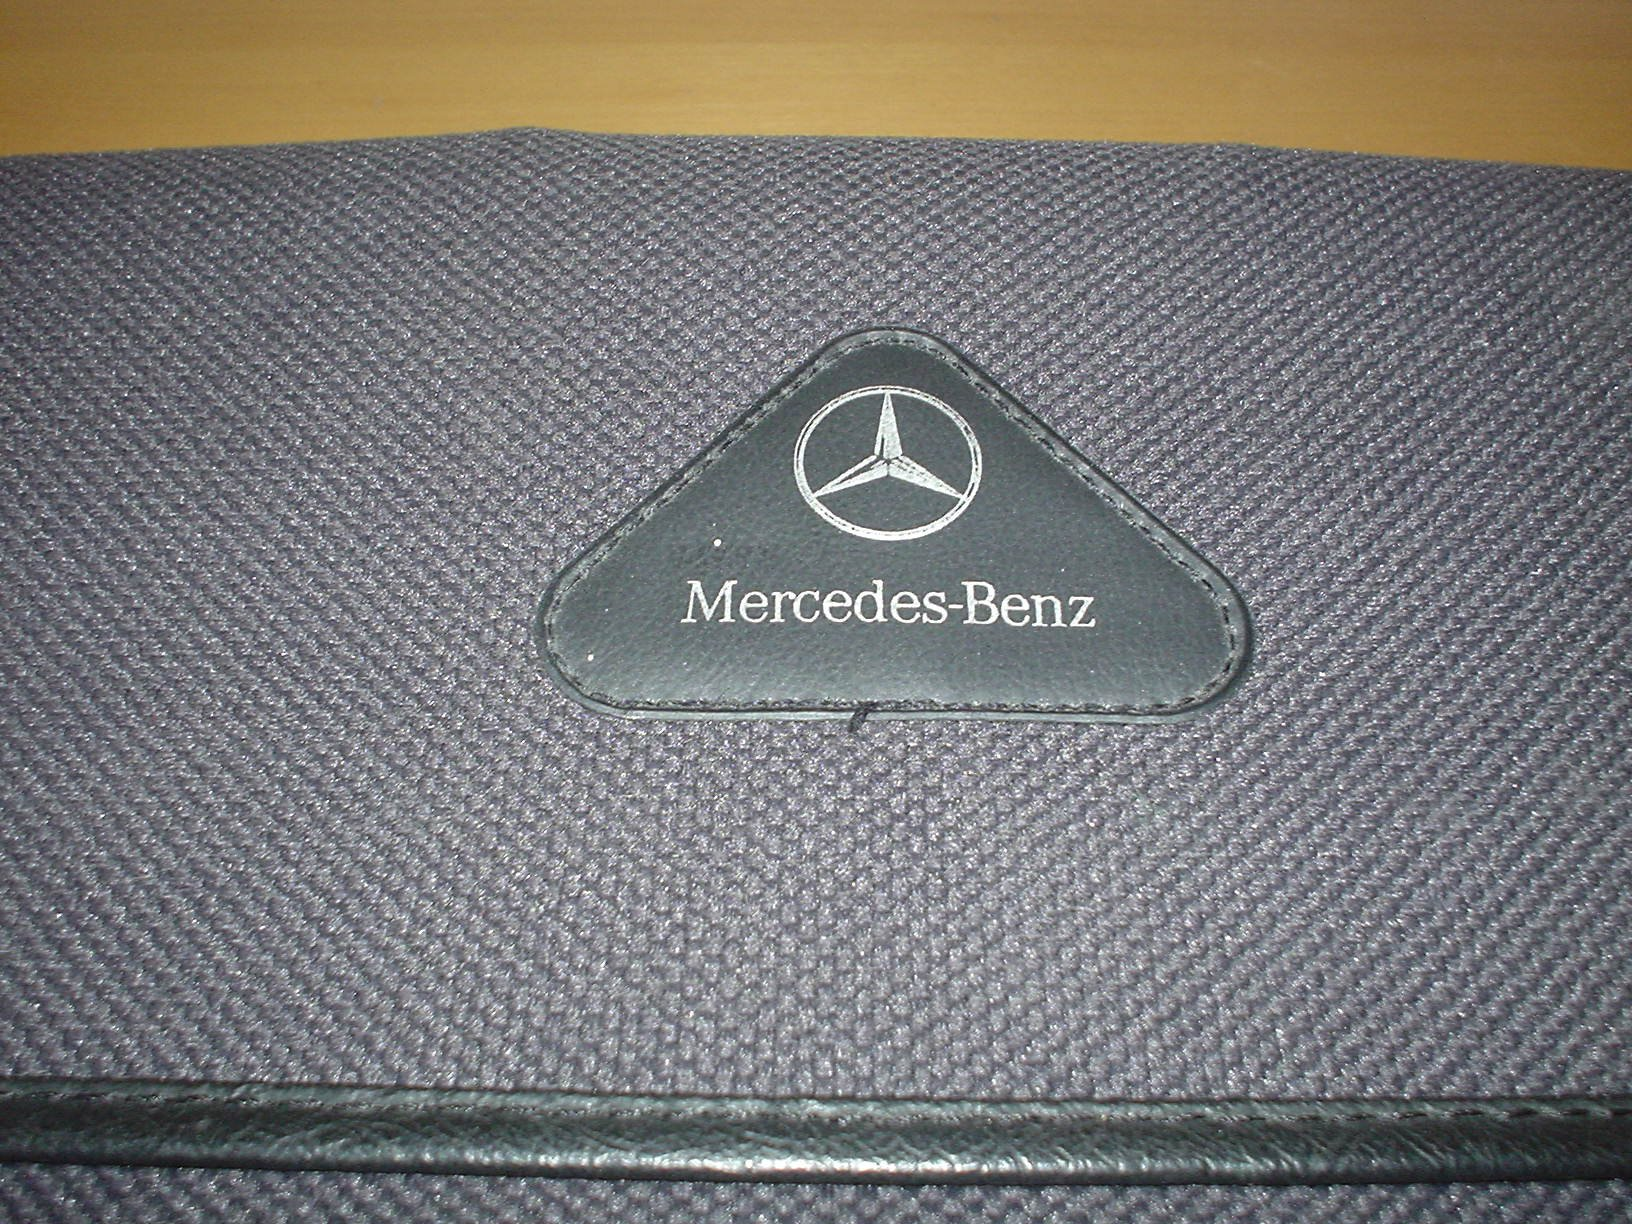 MERCEDES BENZ W210 E-CLASS OWNERS MANUAL HANDBOOK c/w WALLET 1995 - 2002 SALOON & ESTATE - E200 E240 E250 DIESEL E280 4matic E290 TURBODIESEL E300 turbo ...